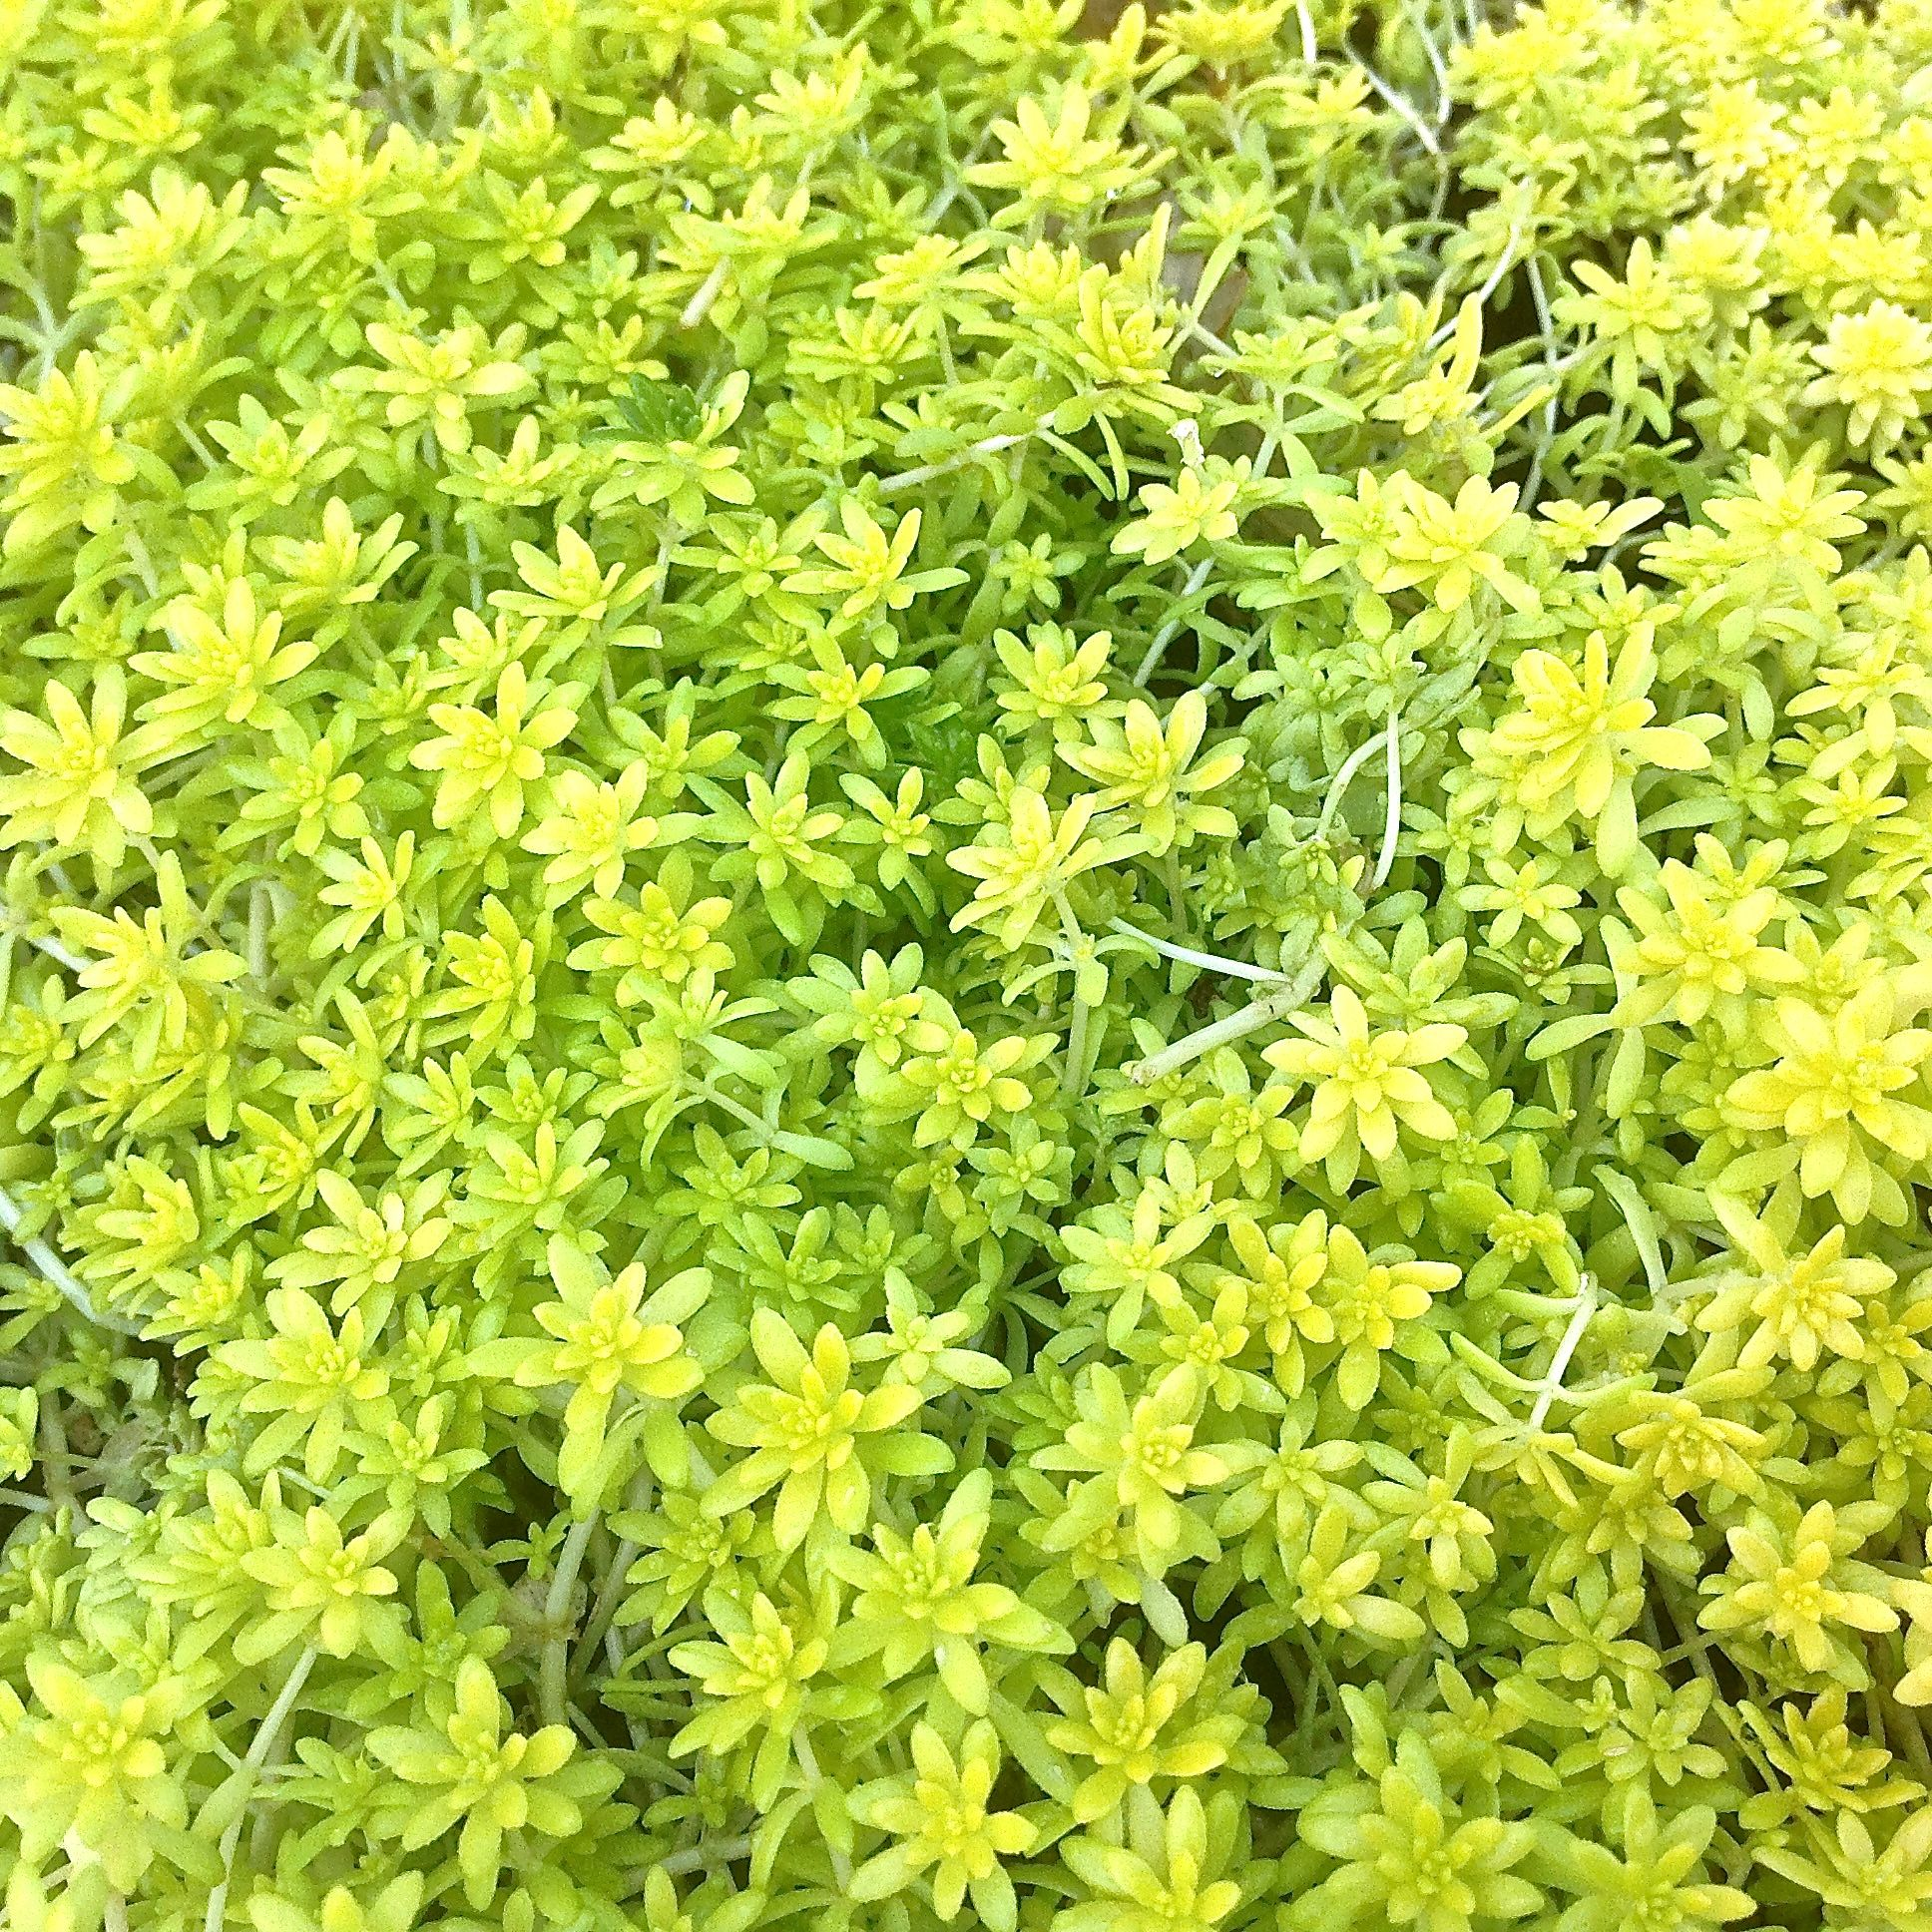 Sedum de oro gold moss 6 8 low water sun or part shade sedum de oro gold moss low water sun or part shade this is not a moss it is a succulentllow flowers on small yellowgreen leaves mightylinksfo Images